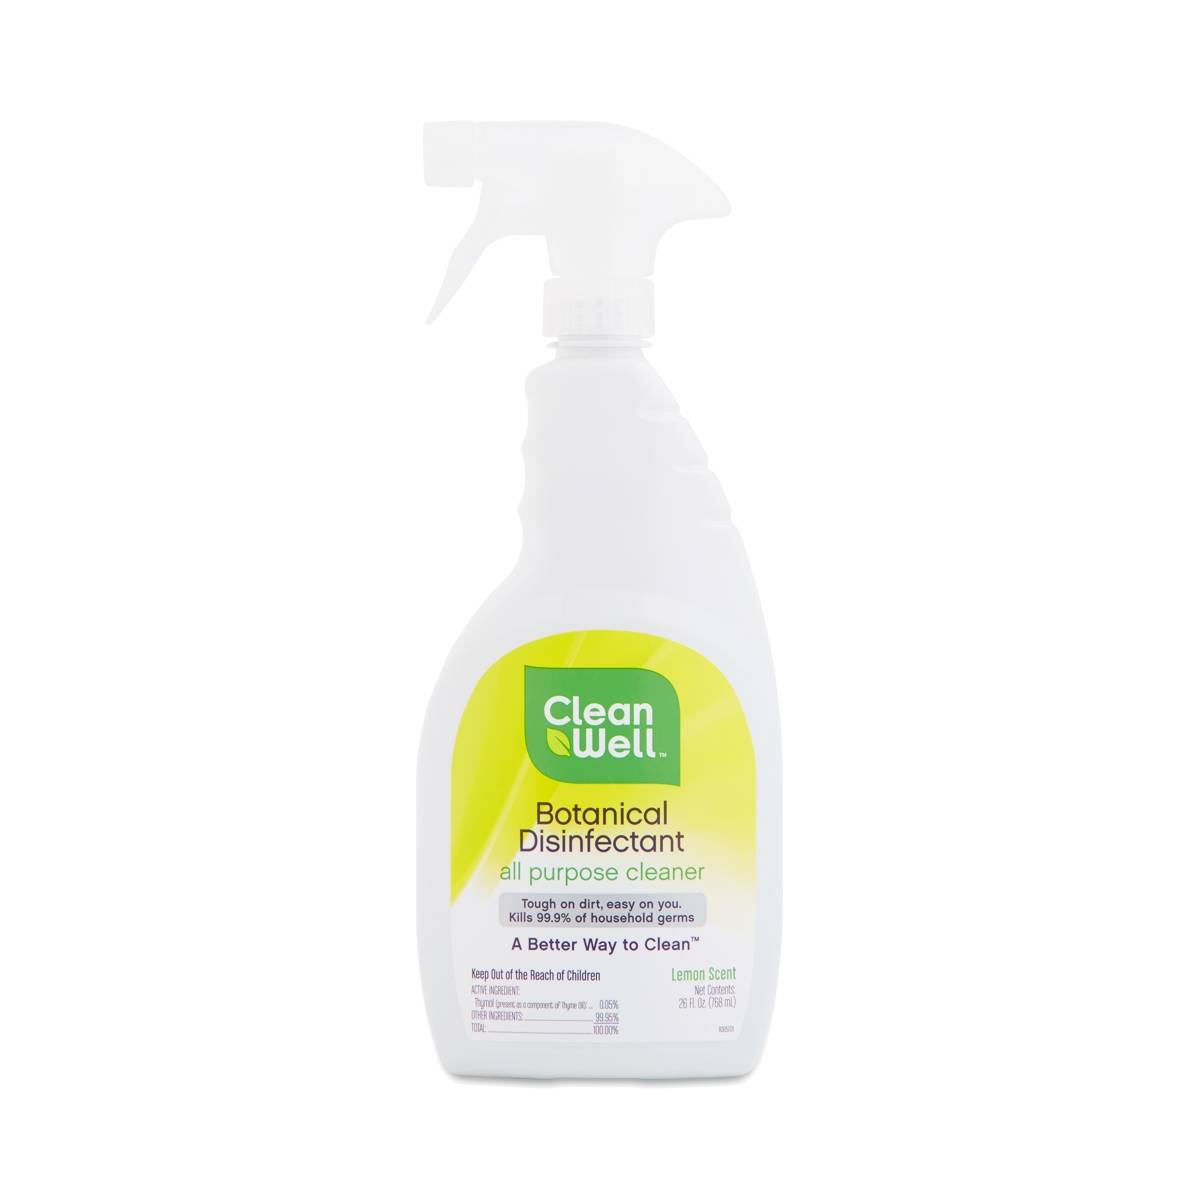 Cleanwell botanical disinfectant all purpose cleaner lemon scent thrive market for Cleanwell botanical disinfectant bathroom cleaner